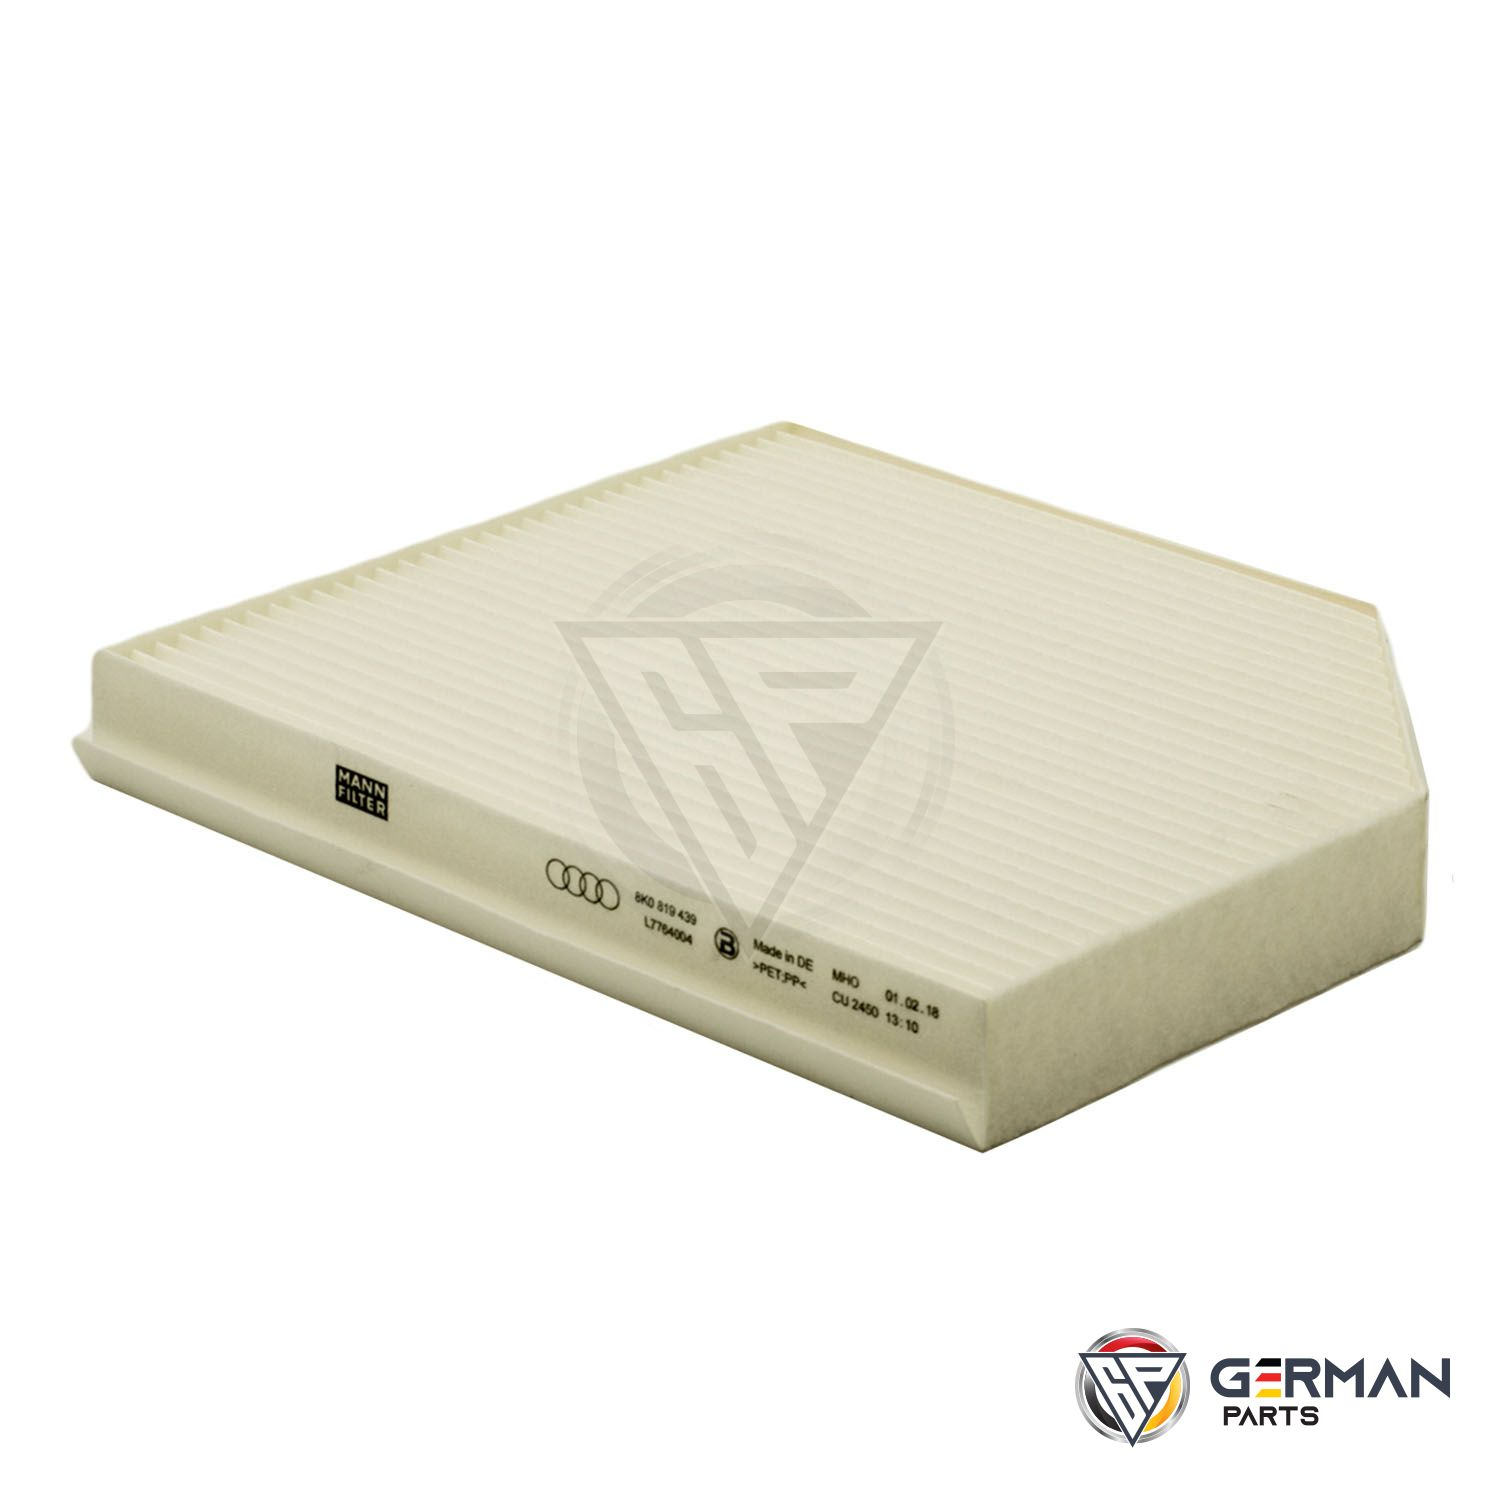 Buy Audi Volkswagen Ac Dust Filter 8K0819439 - German Parts